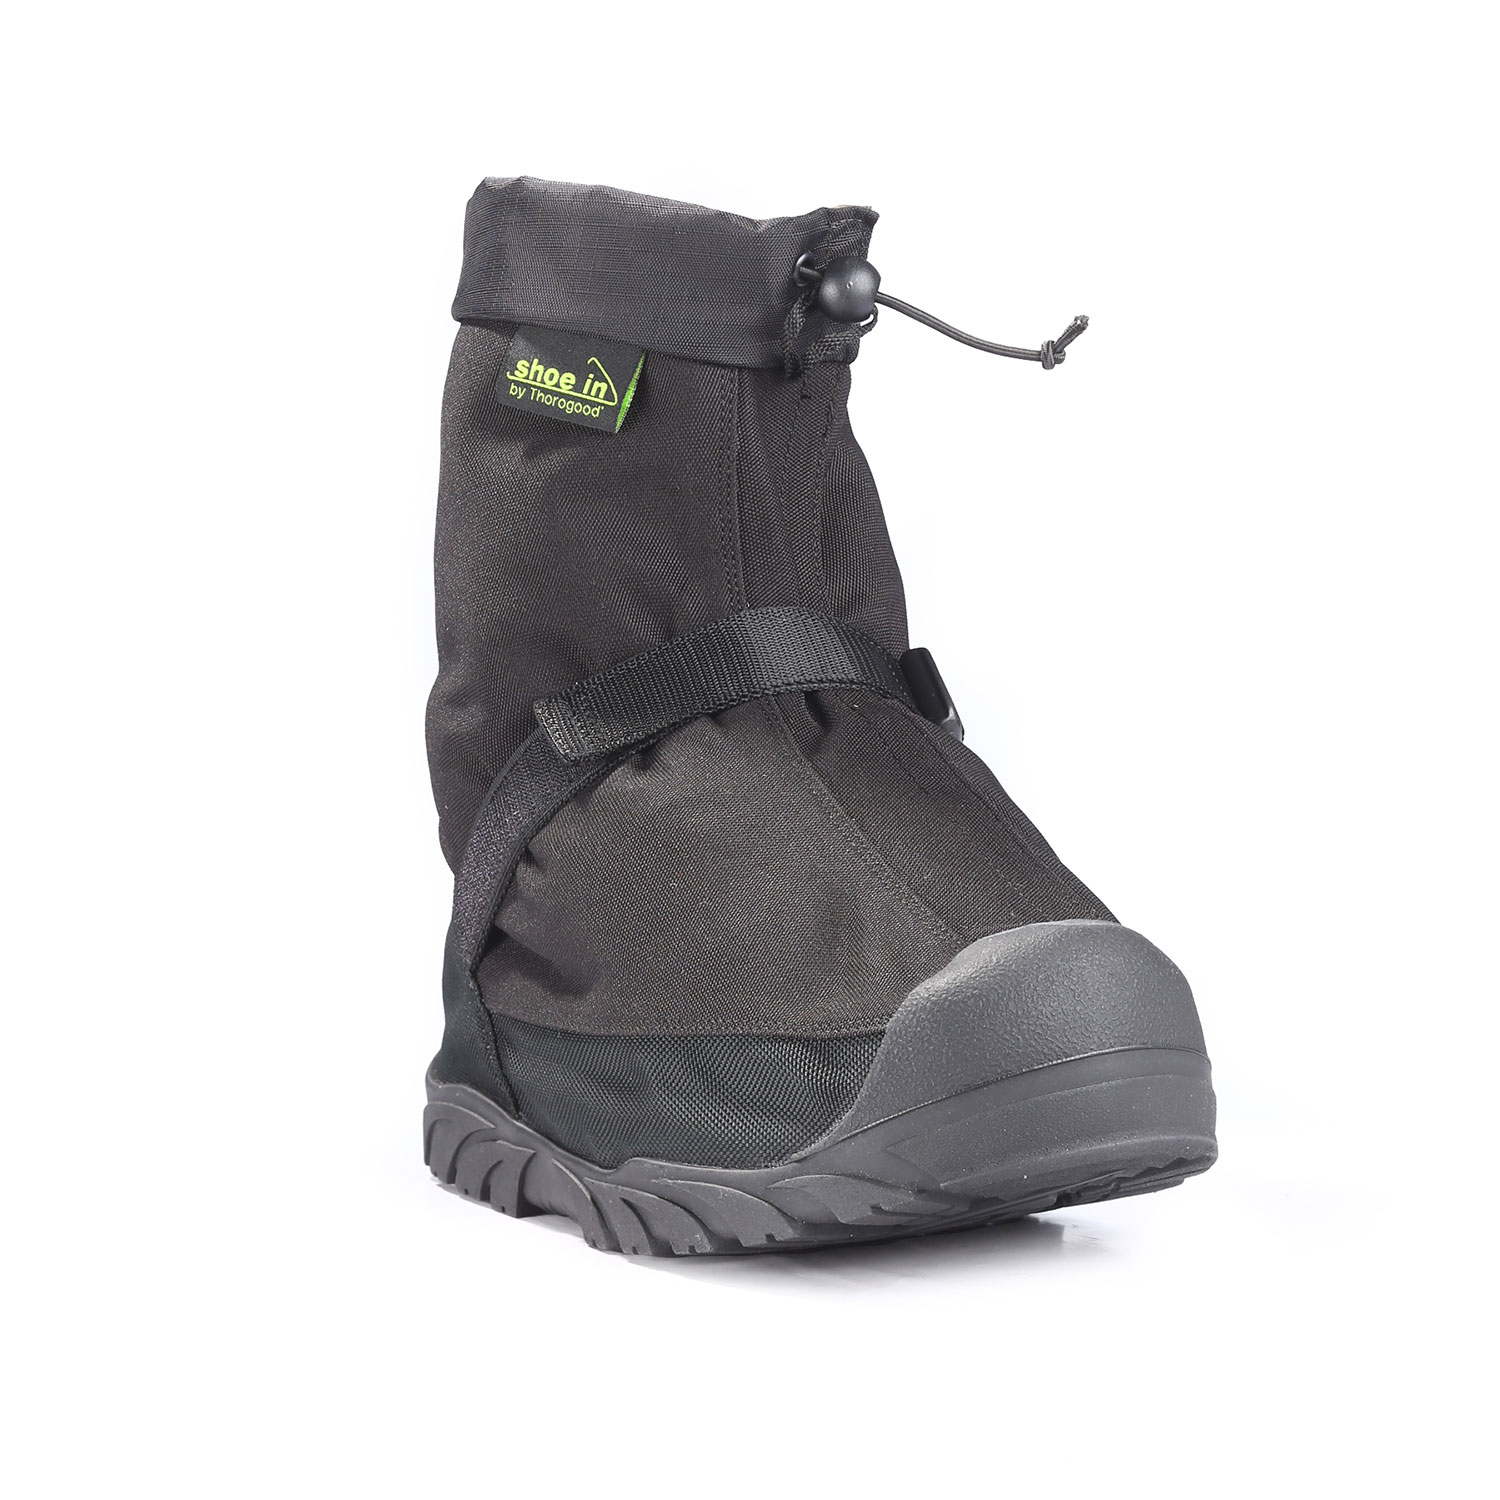 "Thorogood 11"" Avalanche Insulated Overshoe"